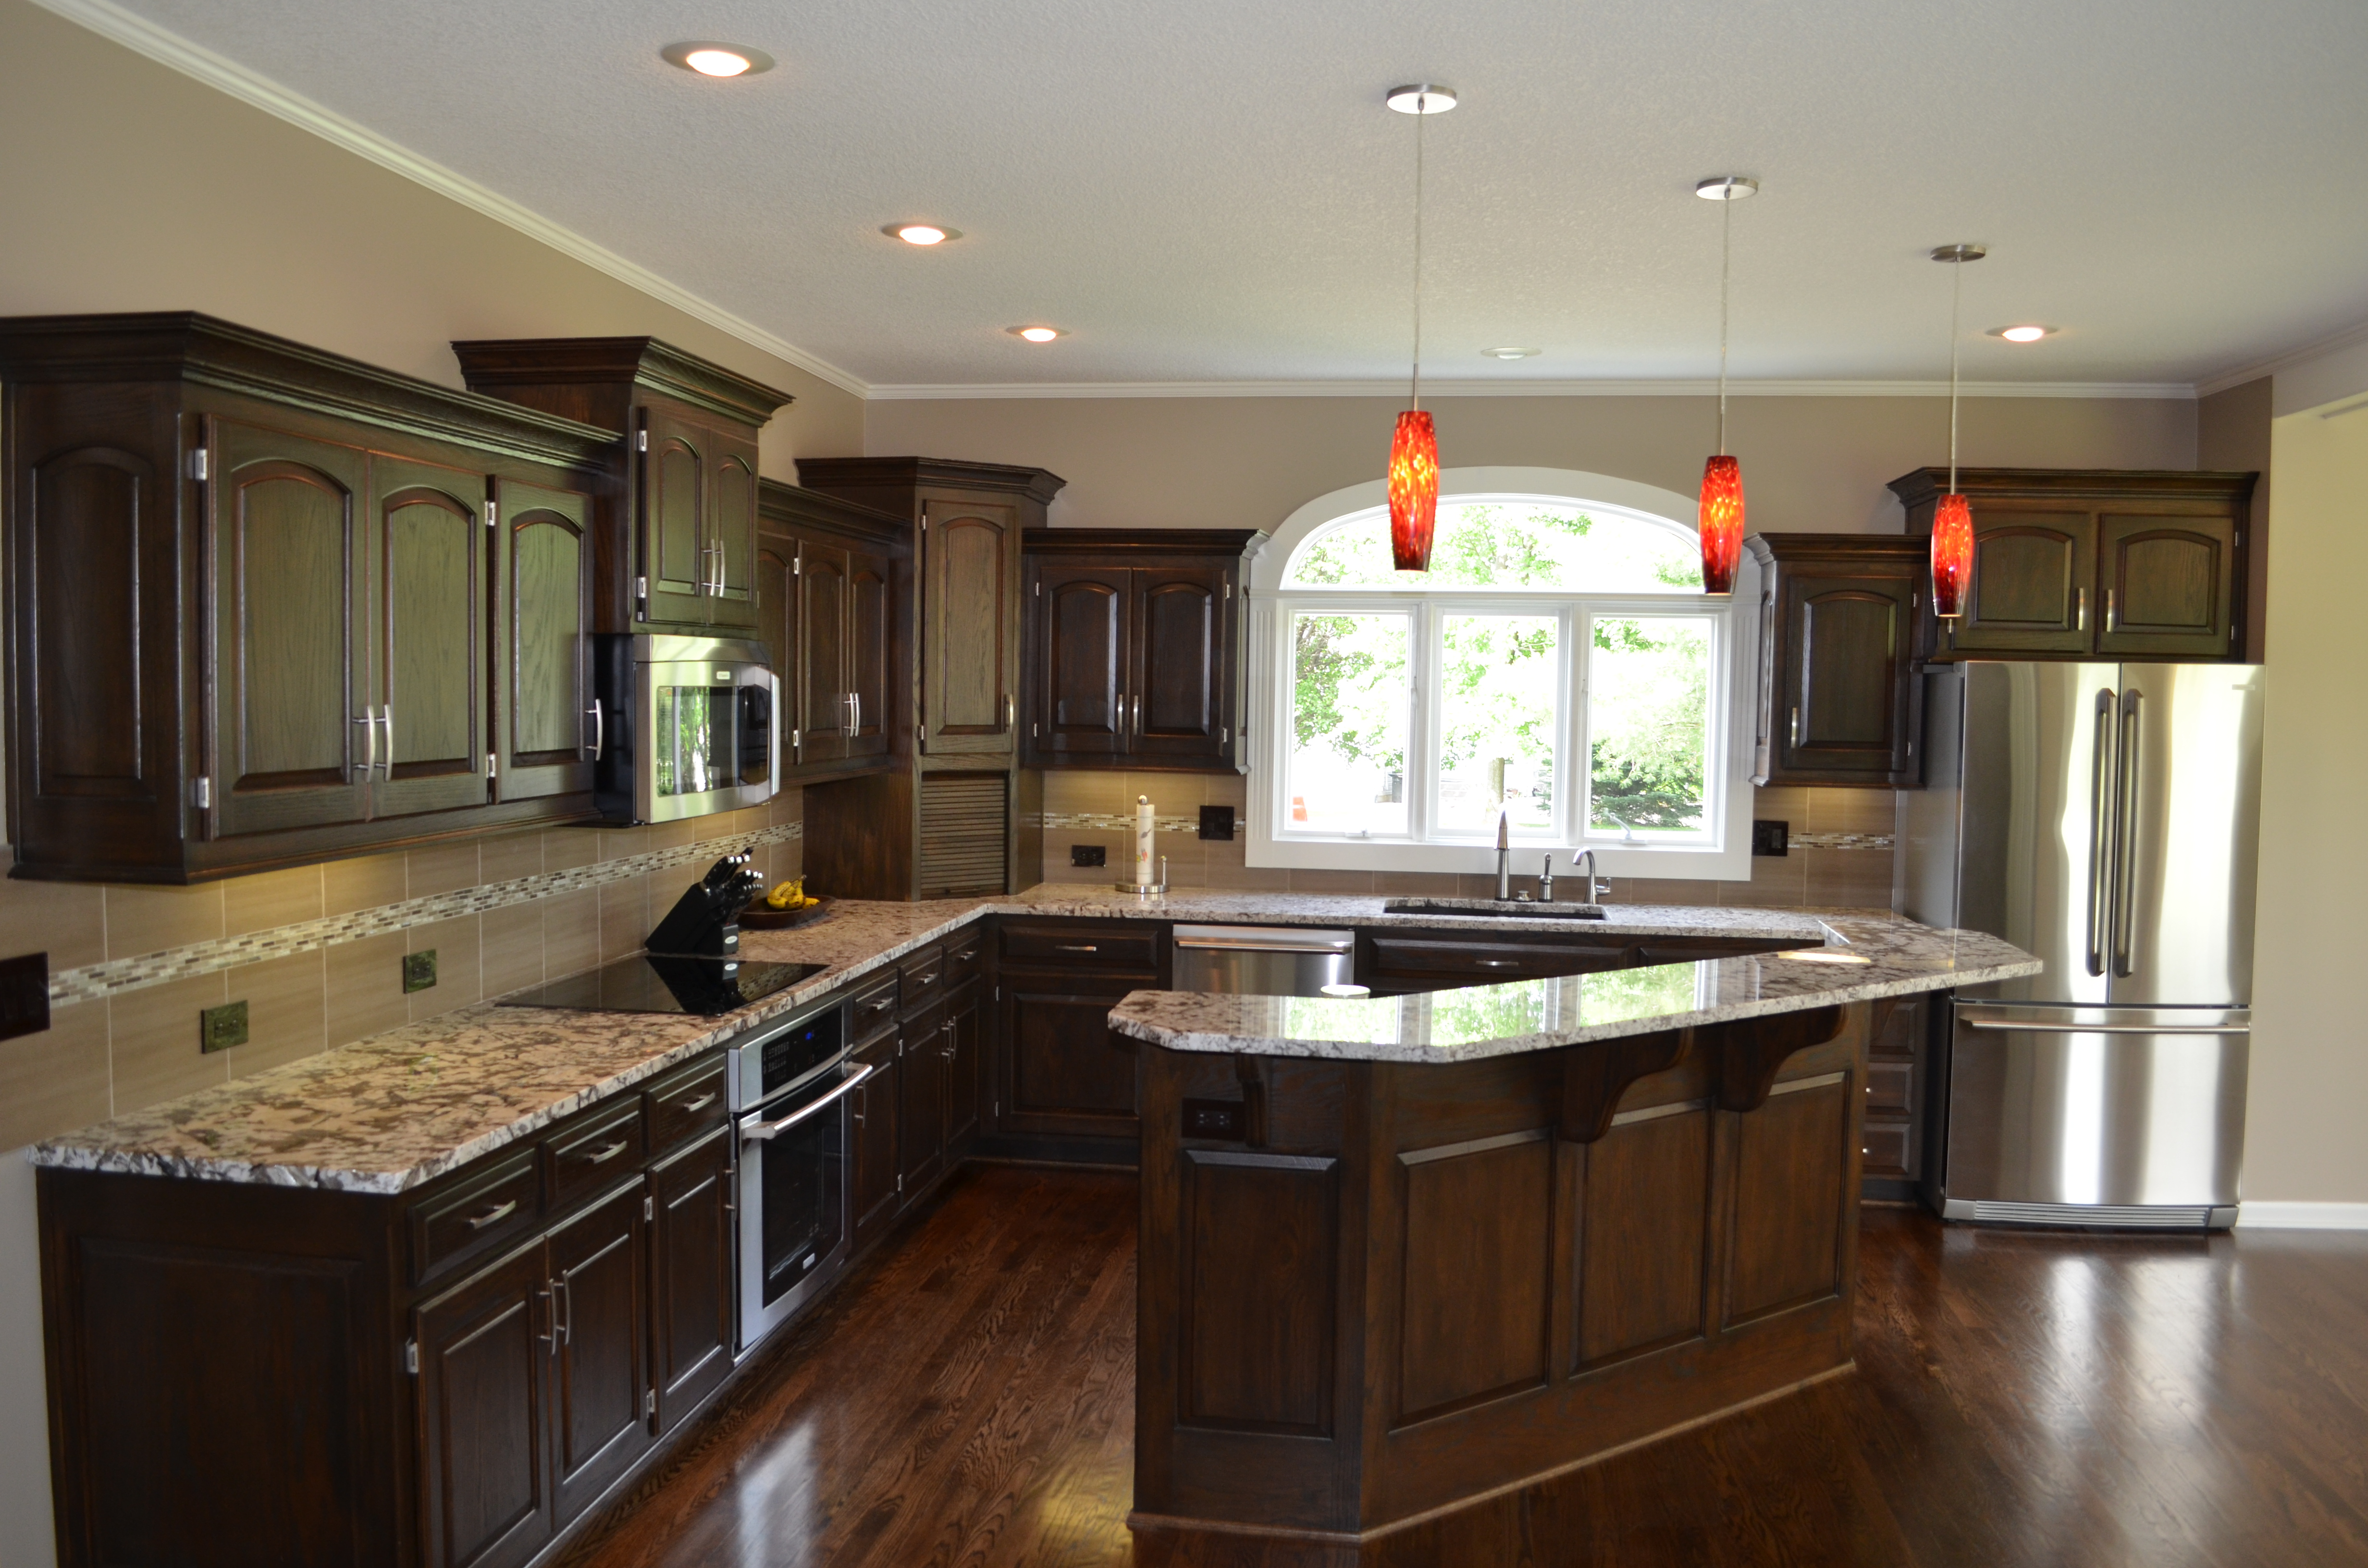 Http Www Kcartisanconstruction Com Kitchen Remodel Kansas City